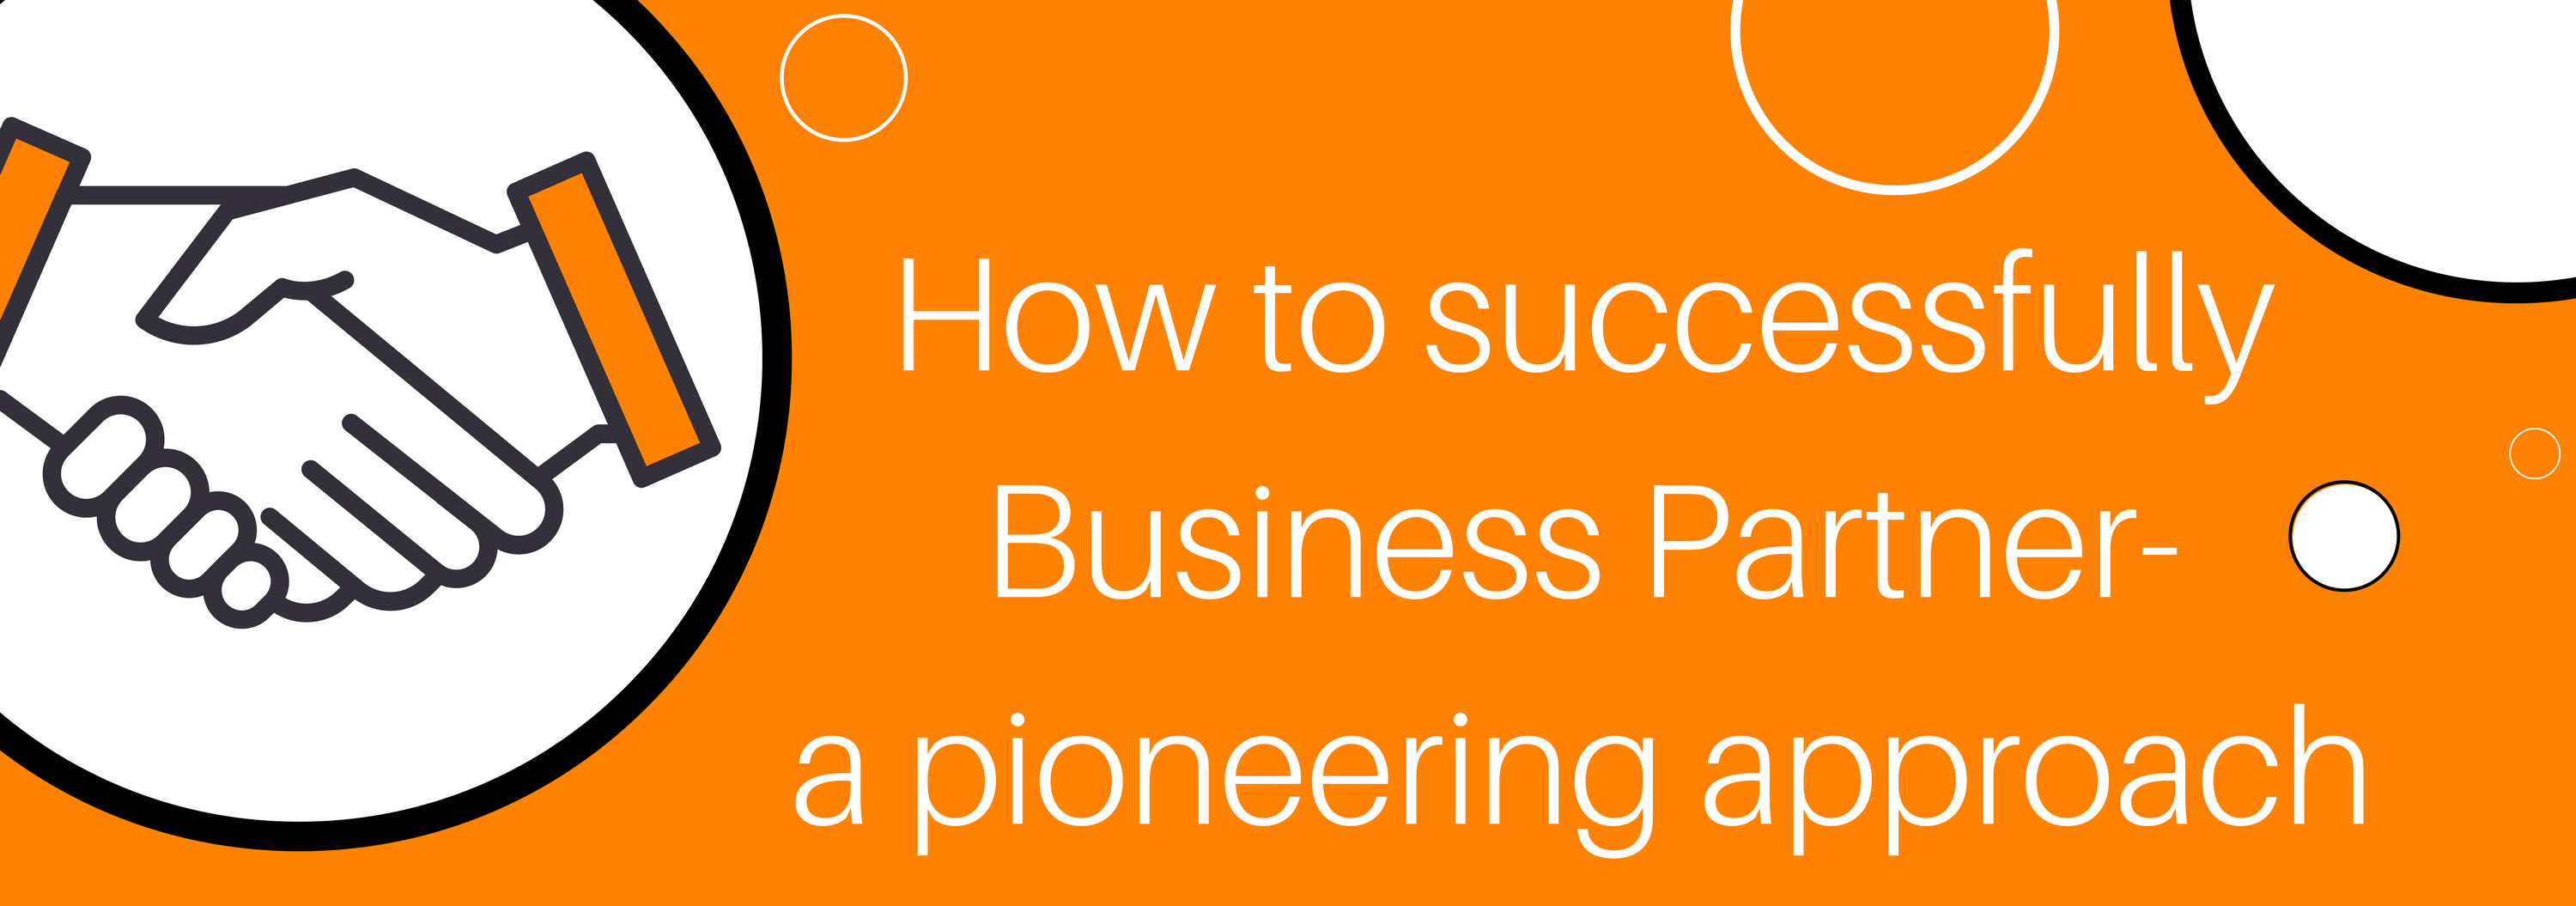 How to successfully Business Partner